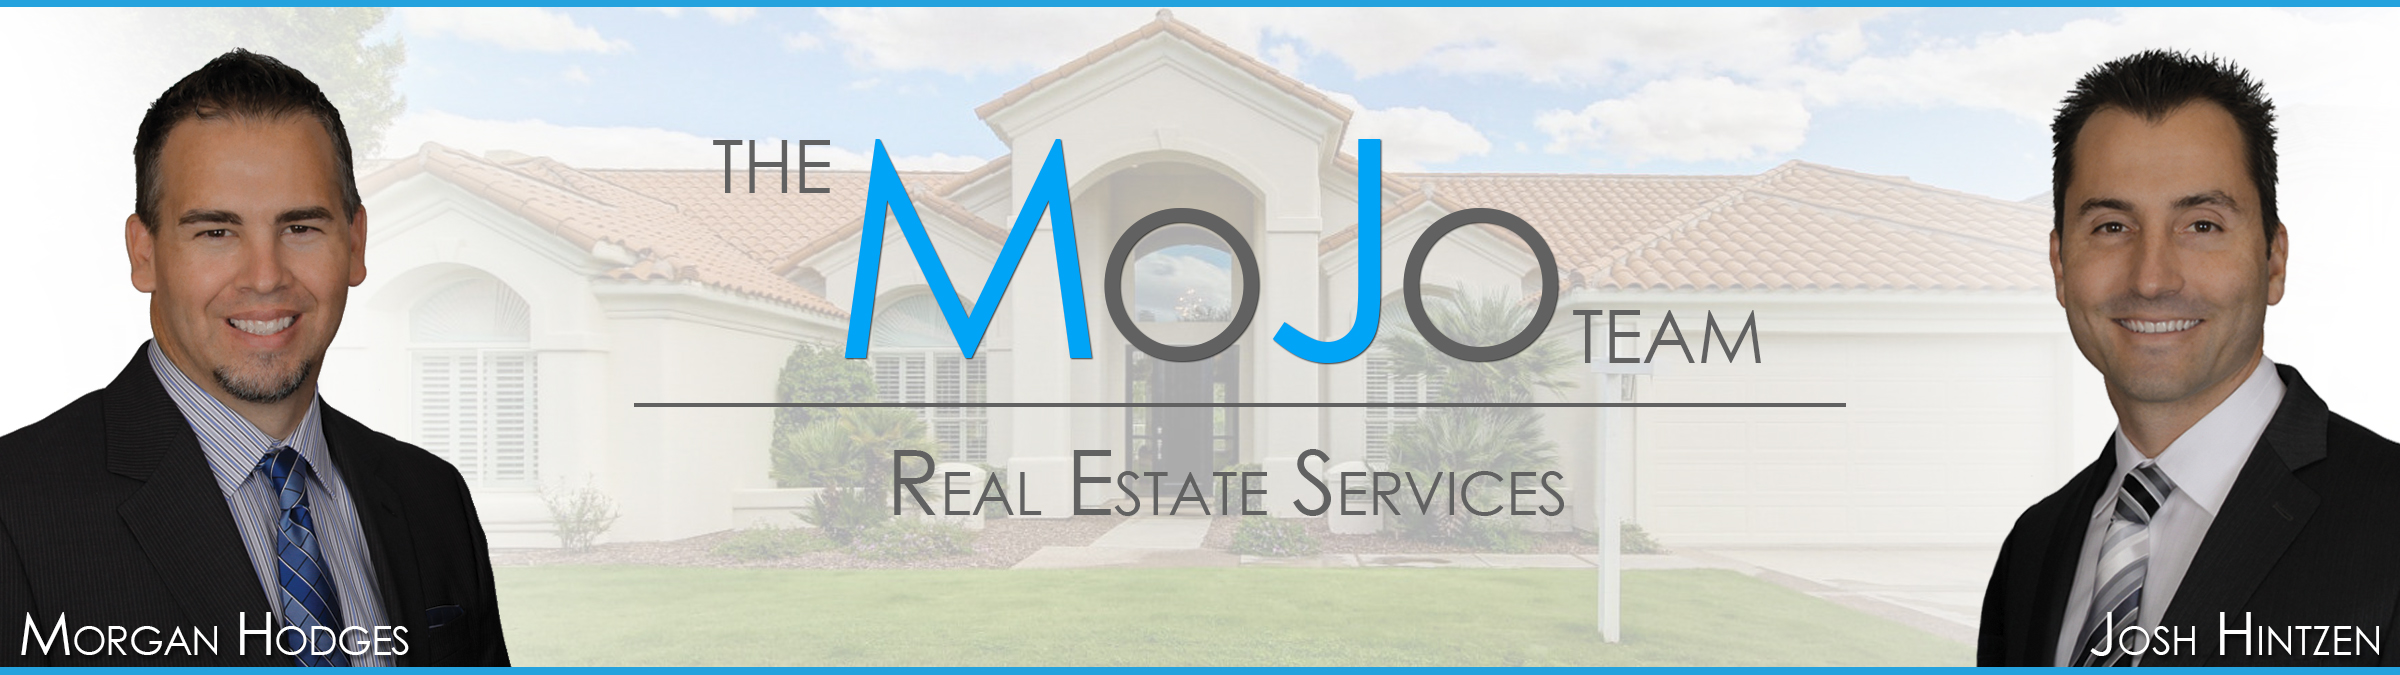 The Mojo Team Real Estate